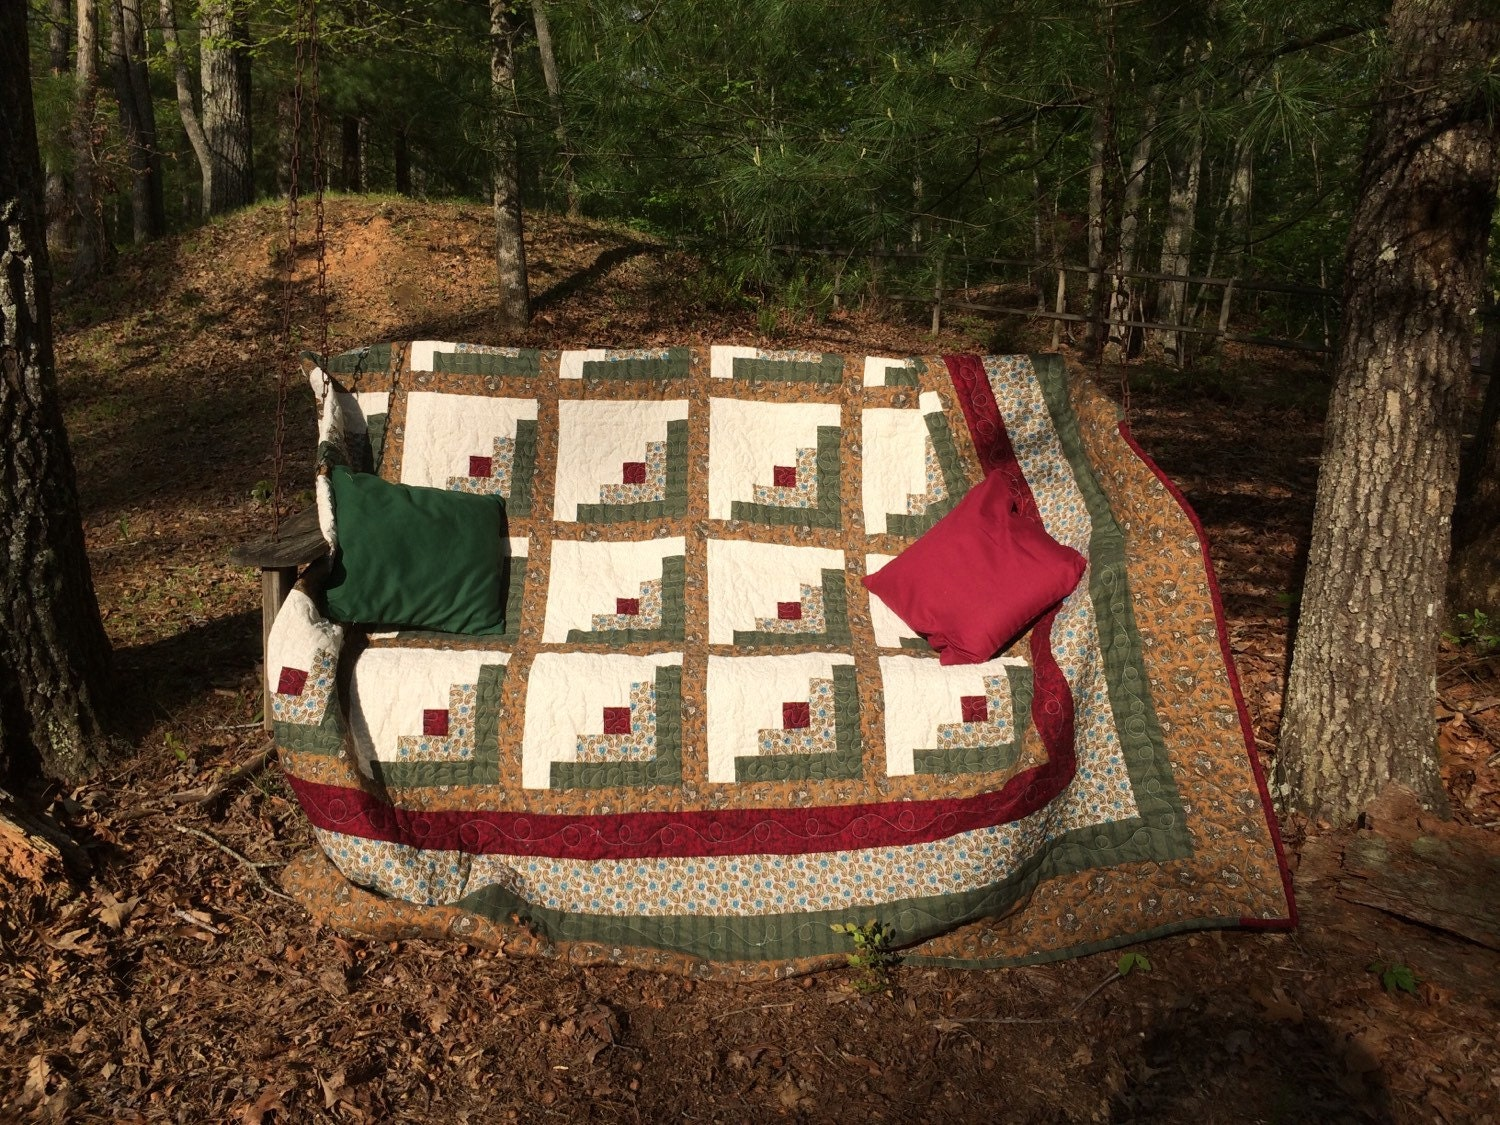 Log Cabin Quilt Pattern Free Queen Size : Queen size log cabin quilt. Dimensions 97x97.